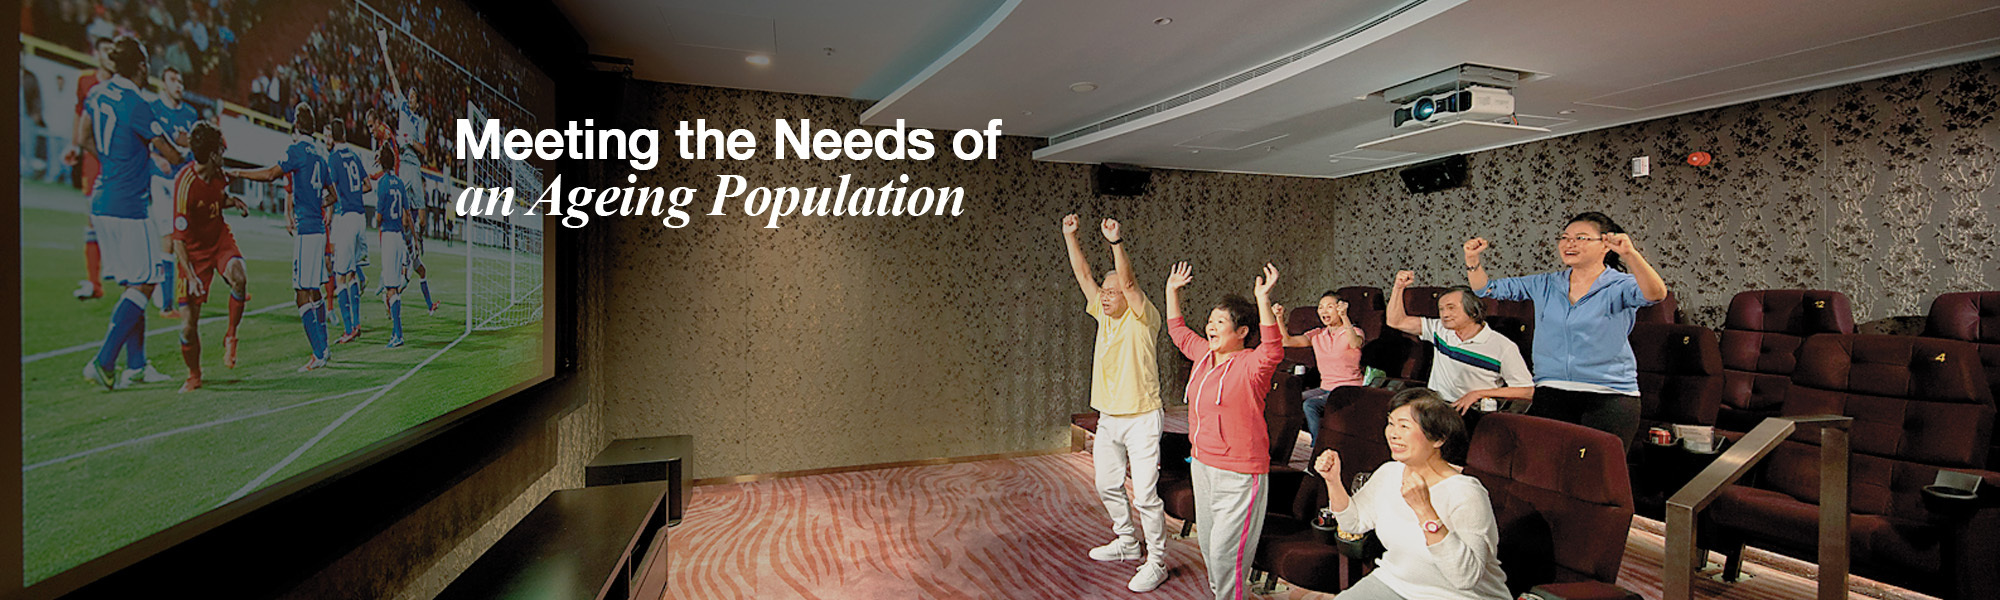 Meeting the Needs of an Ageing Population